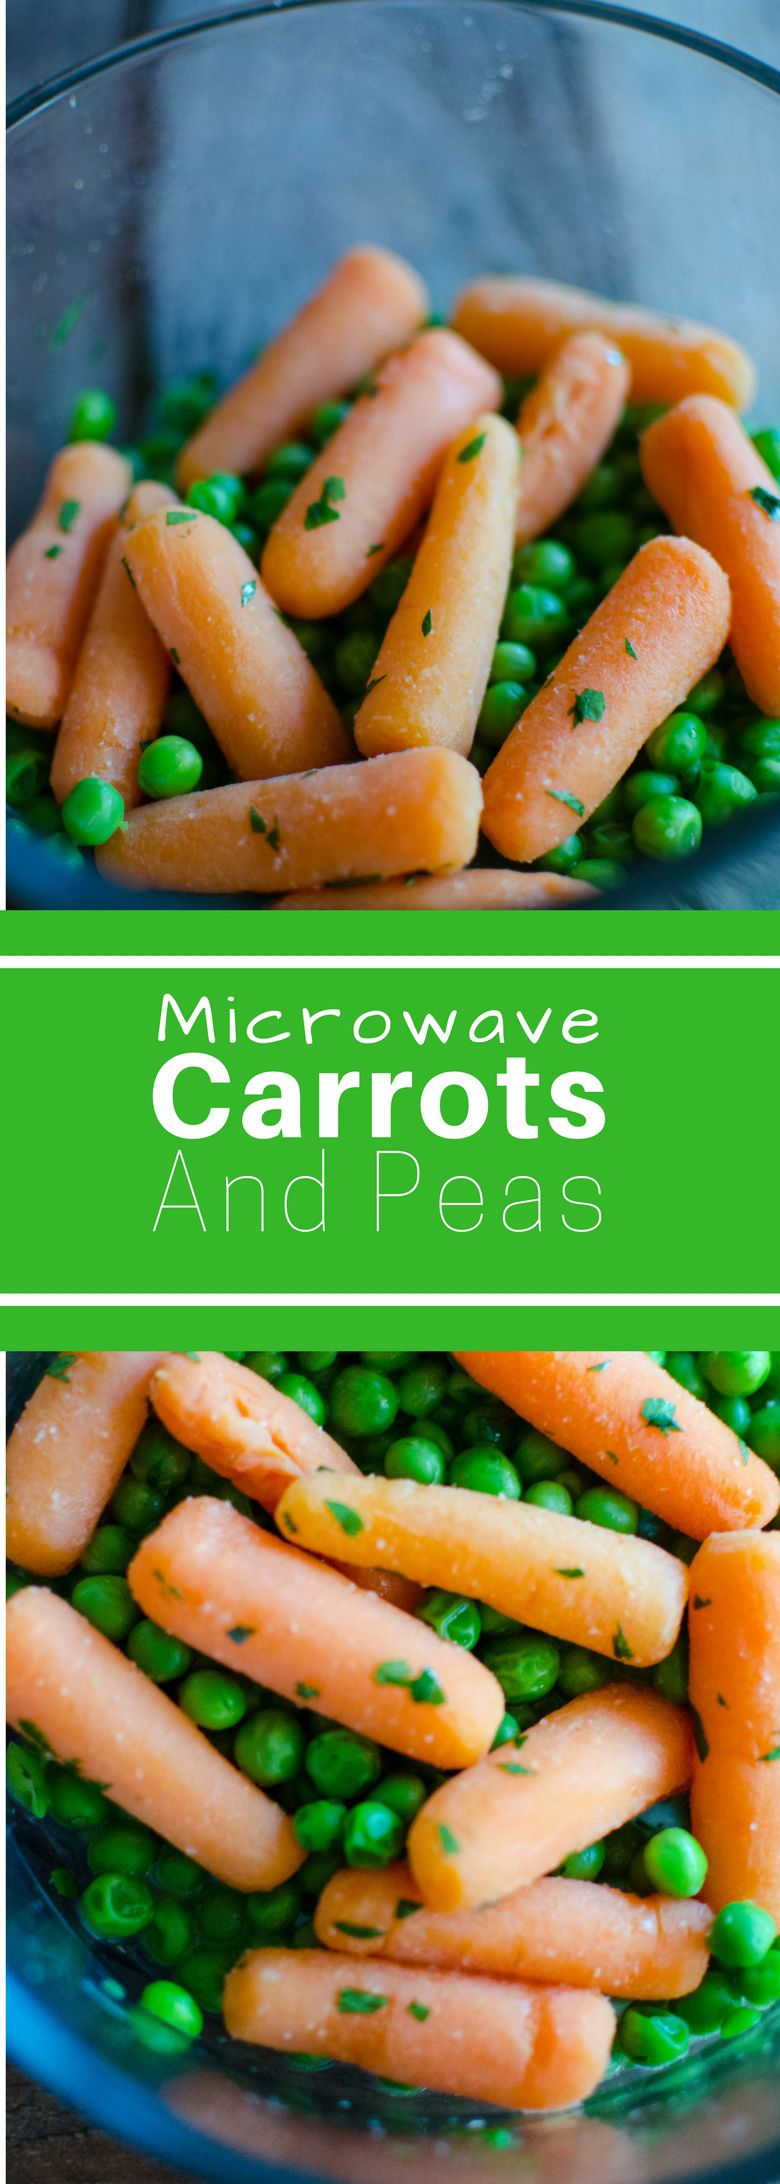 Microwave Carrots and Peas #SundaySupper. This delicious side dish is ready in 10 minutes. There's no excuse not to have a vegetable on the table with this easy recipe!